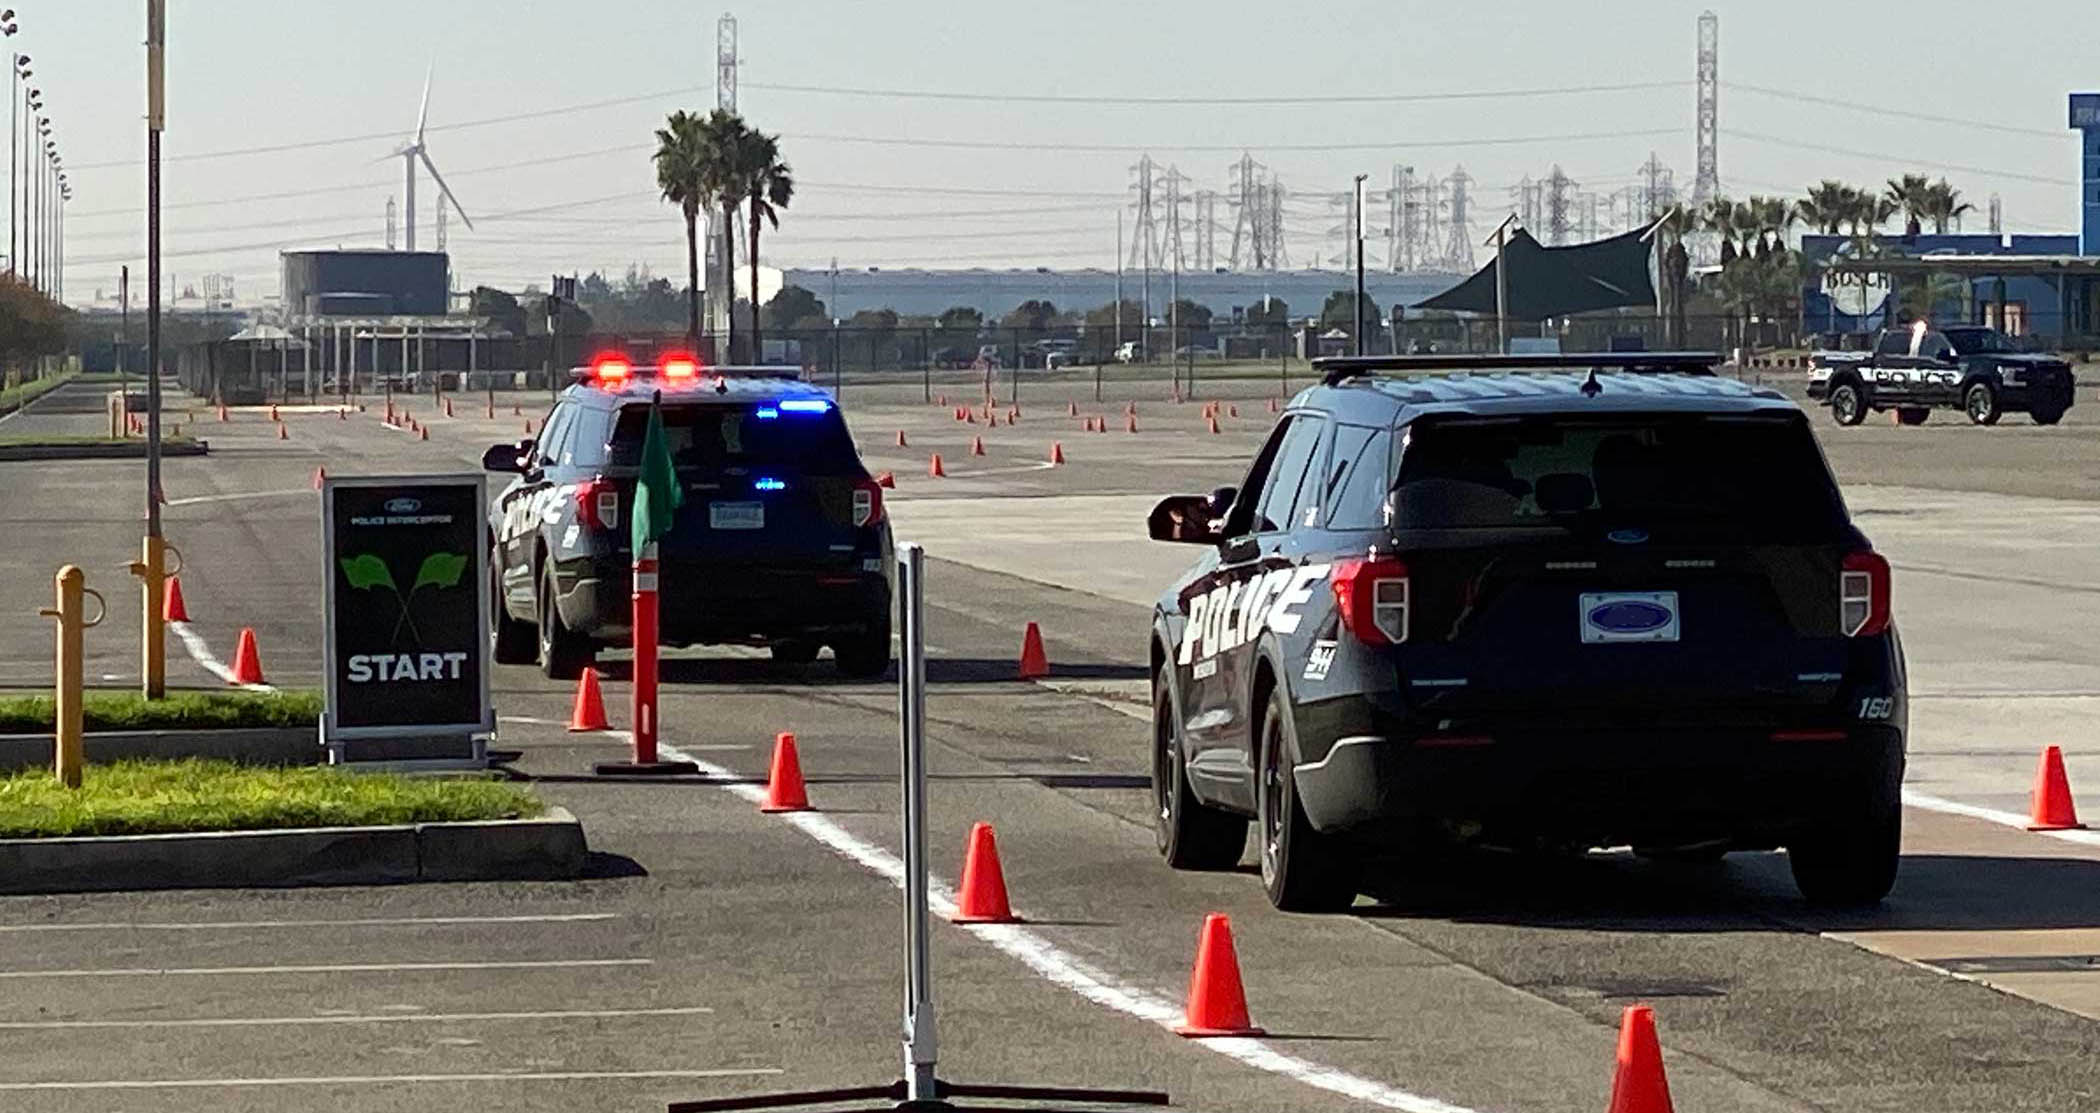 Los Angeles County Sheriff 2020/21 Model Year Vehicle Tests